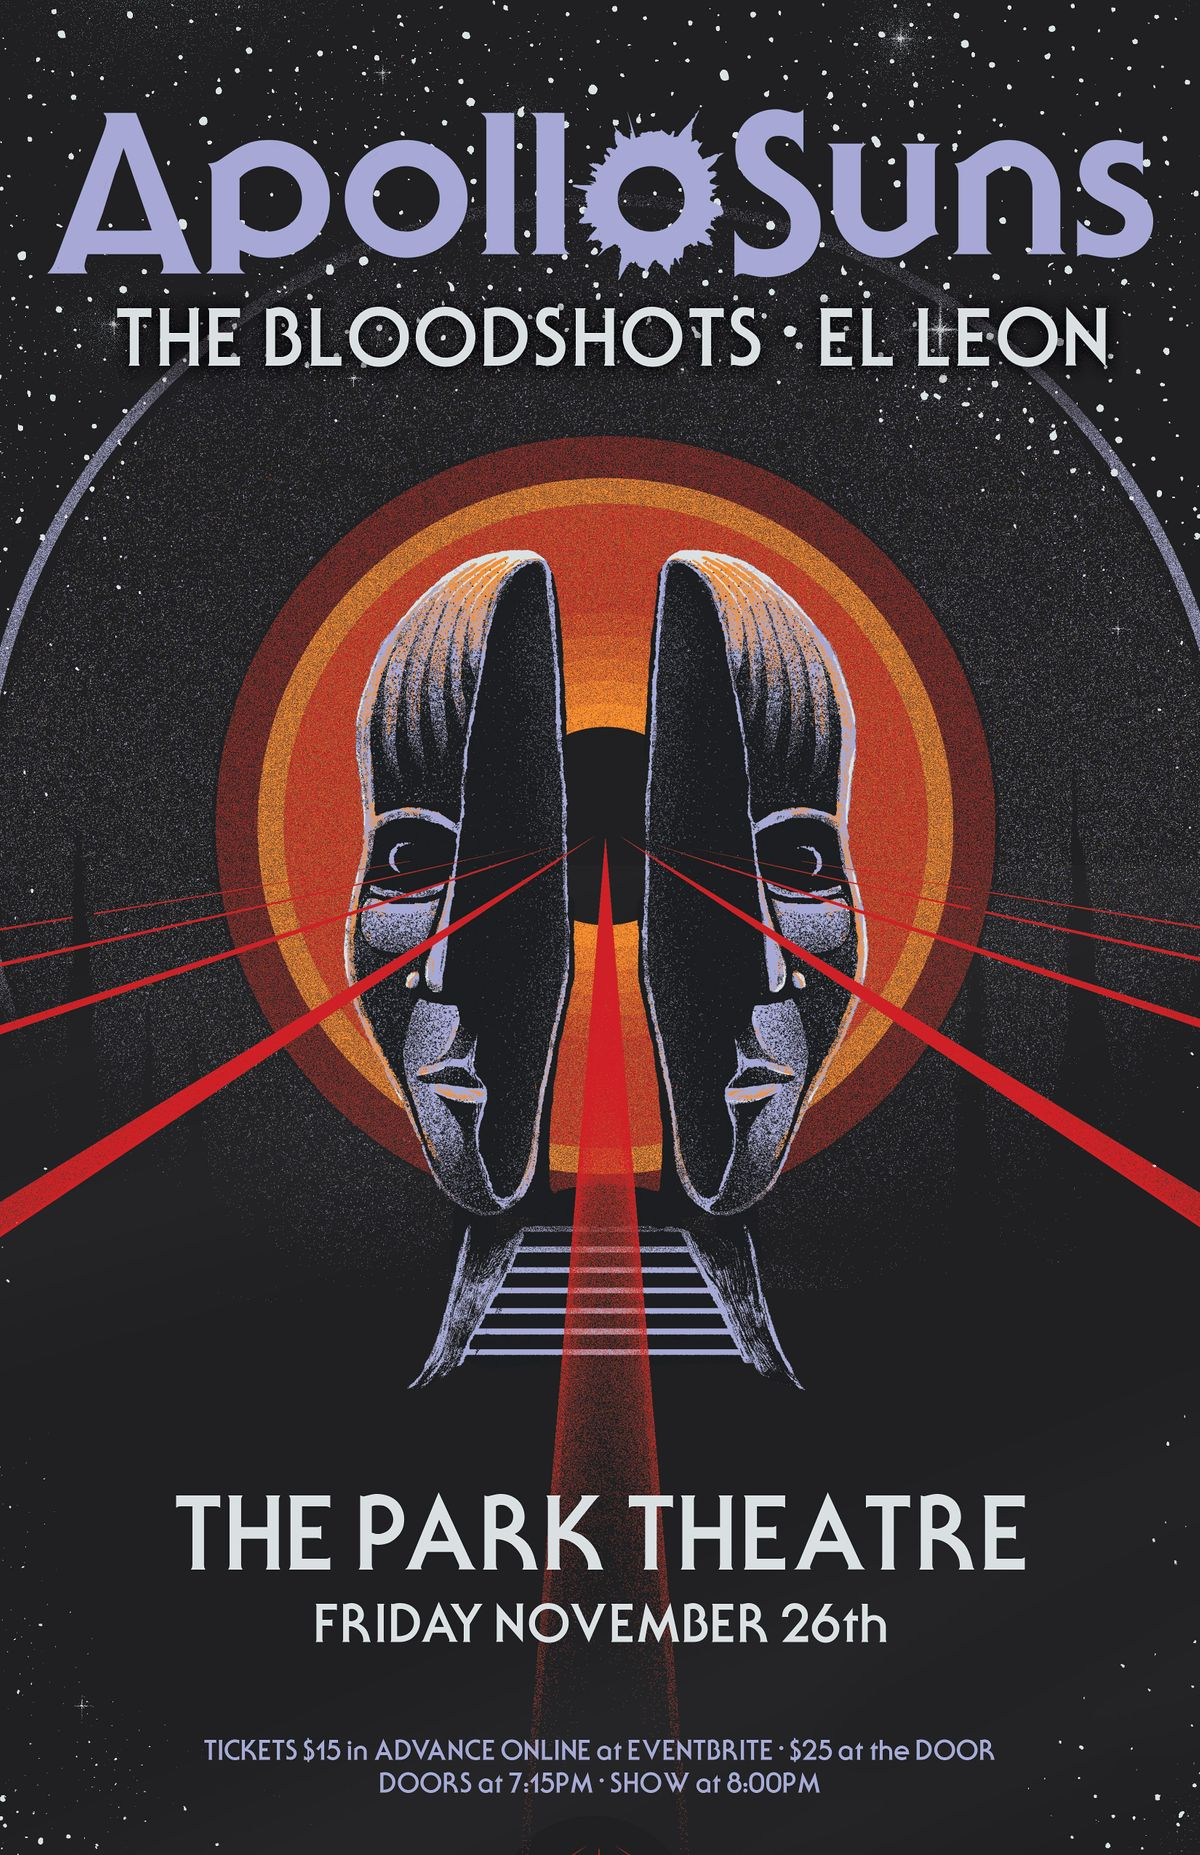 Apollo Suns live at the Park w/ The Blood Shots & El Leon, 26 November | Event in Winnipeg | AllEvents.in